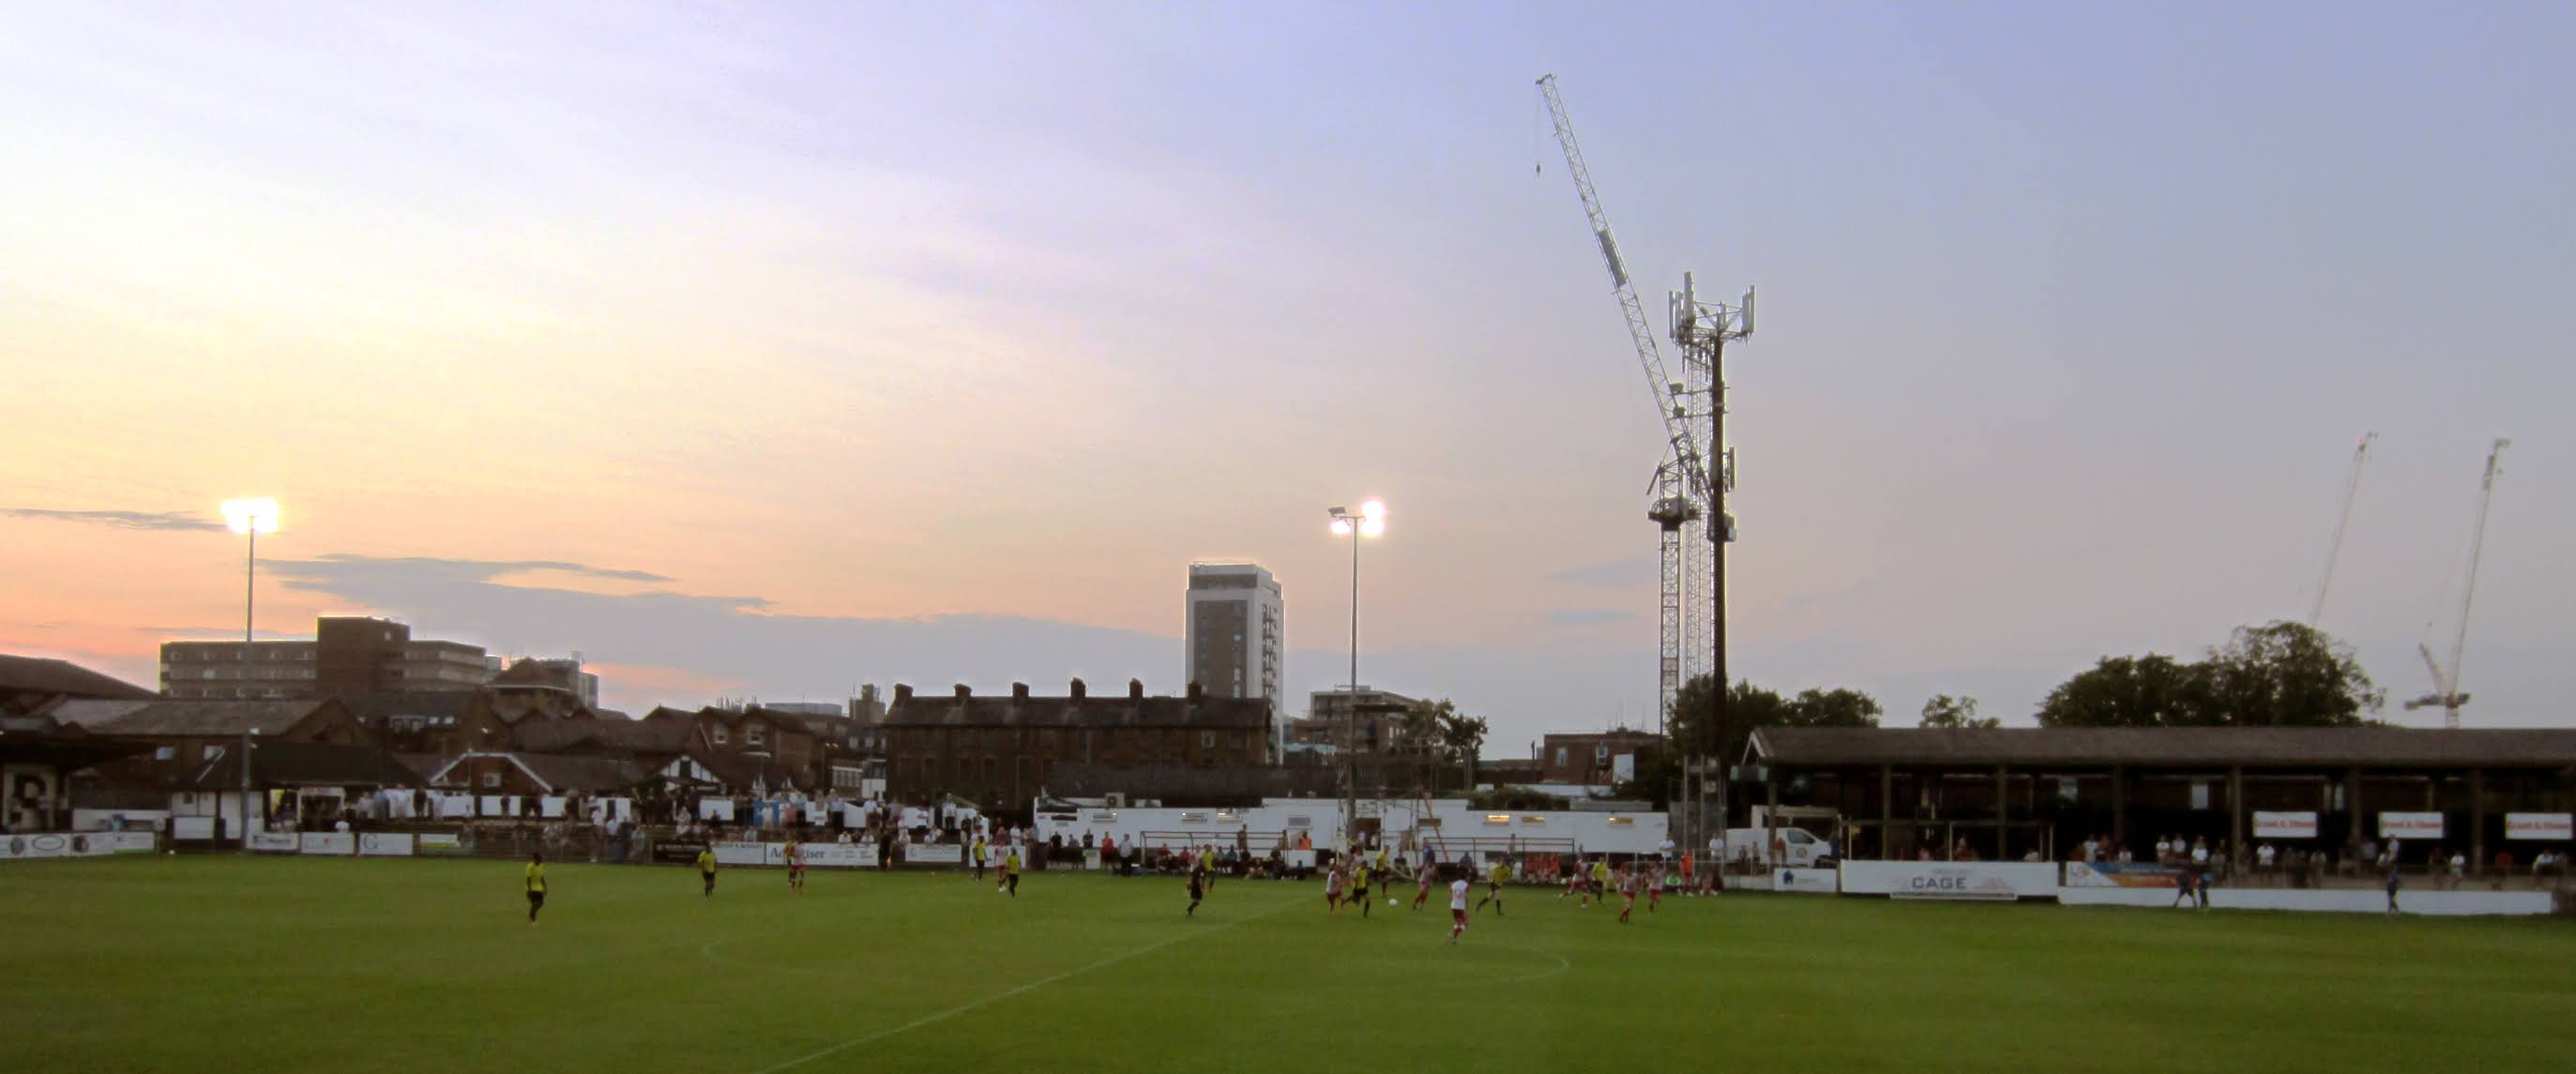 A view towards the Maidenhead town centre from the main stand at York Road